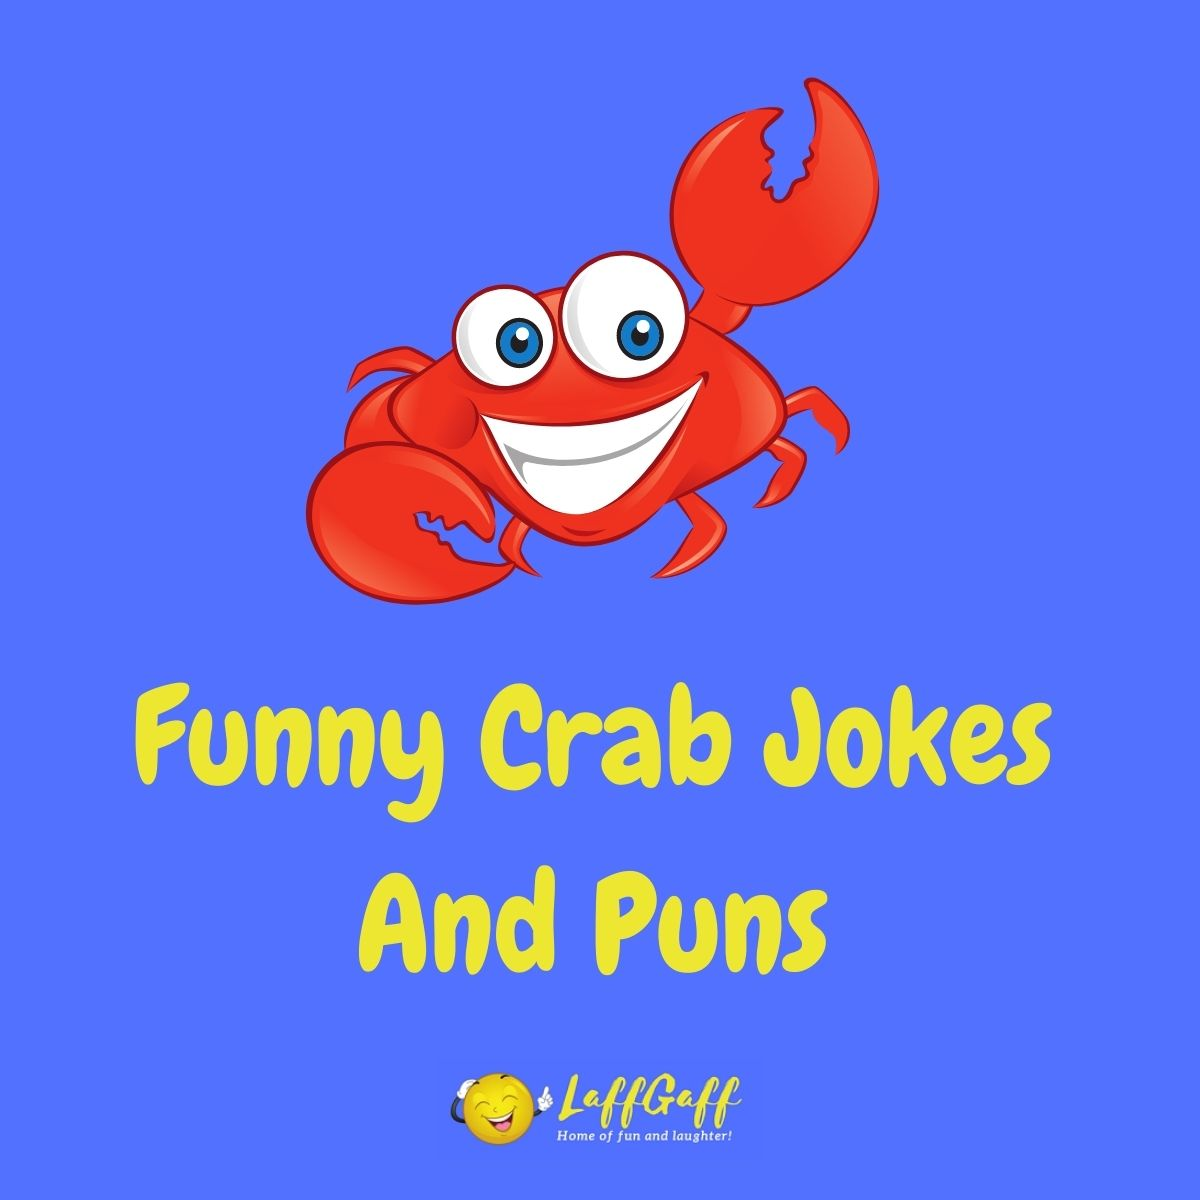 Featured image for a page of funny crab jokes and puns.